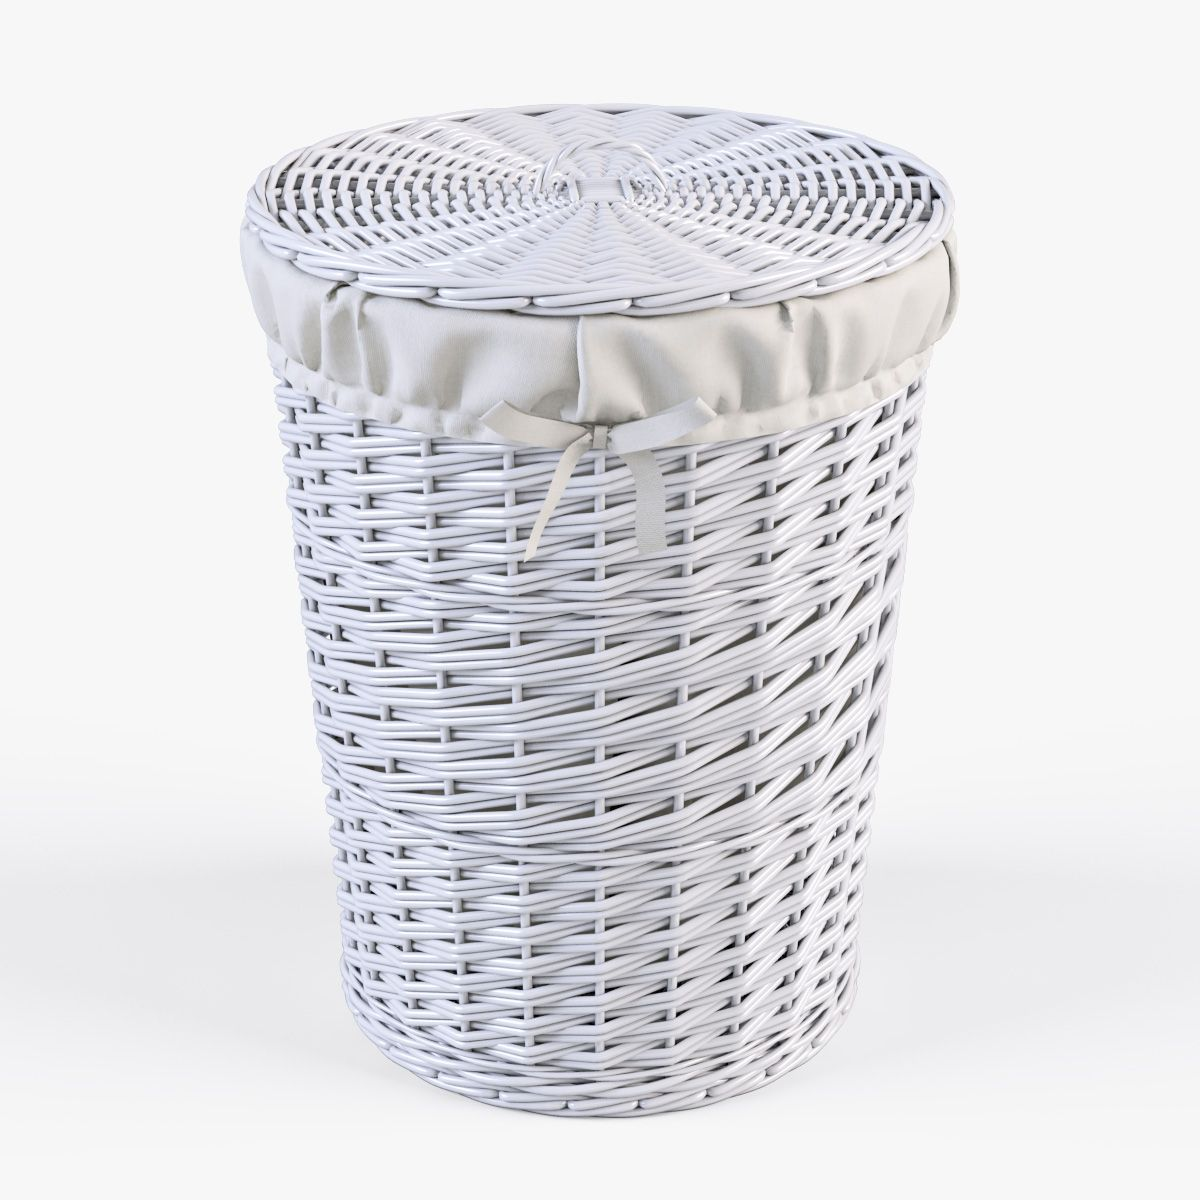 Wicker Laundry Basket 03 Set 3 Color Basket Laundry Wicker